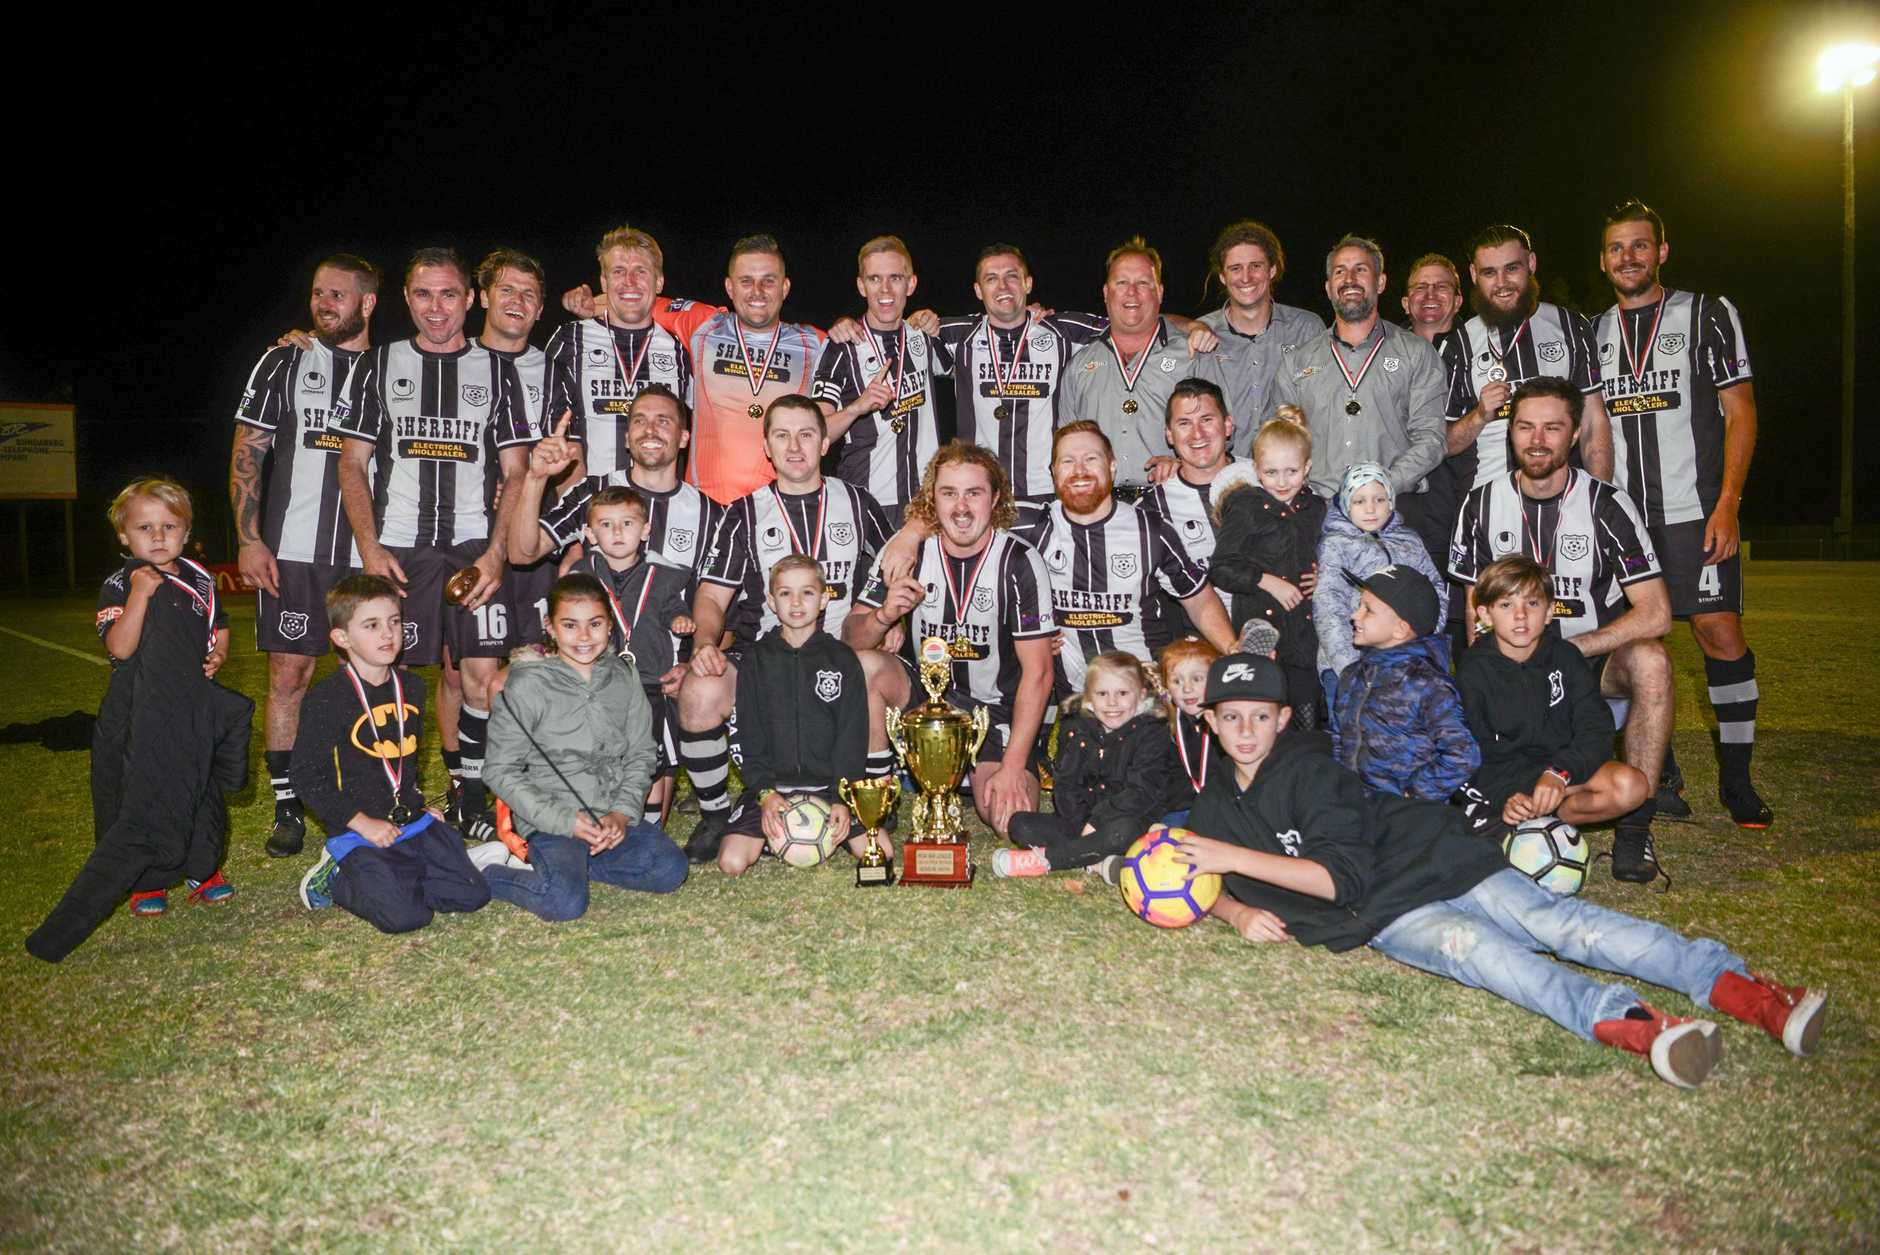 The winners of the Wide Bay League Grand Final in 2018, the Bingera Football Club.